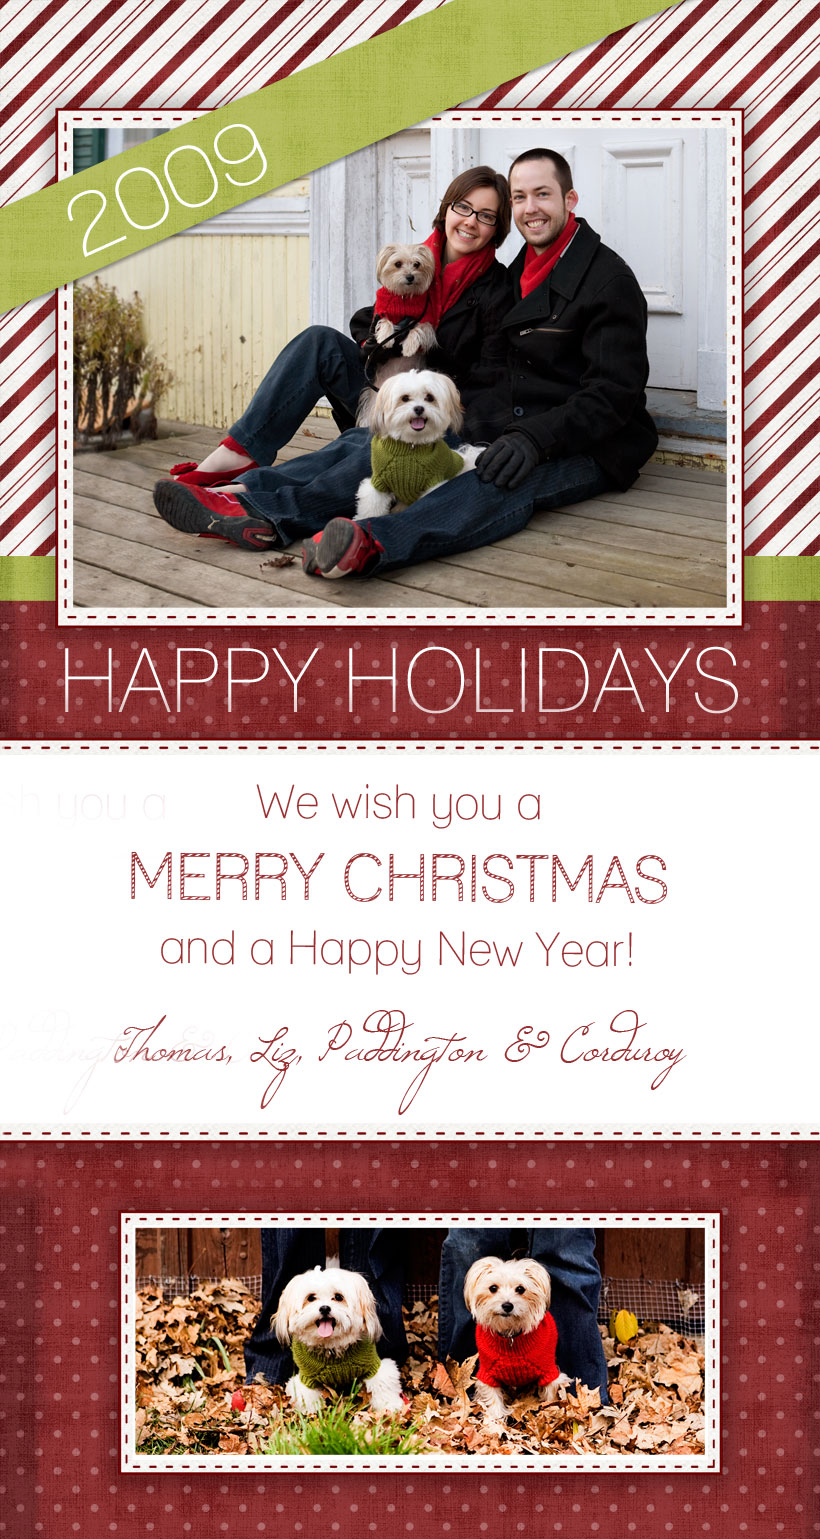 Merry Christmas and Happy Holidays from elizabeth&jane photography